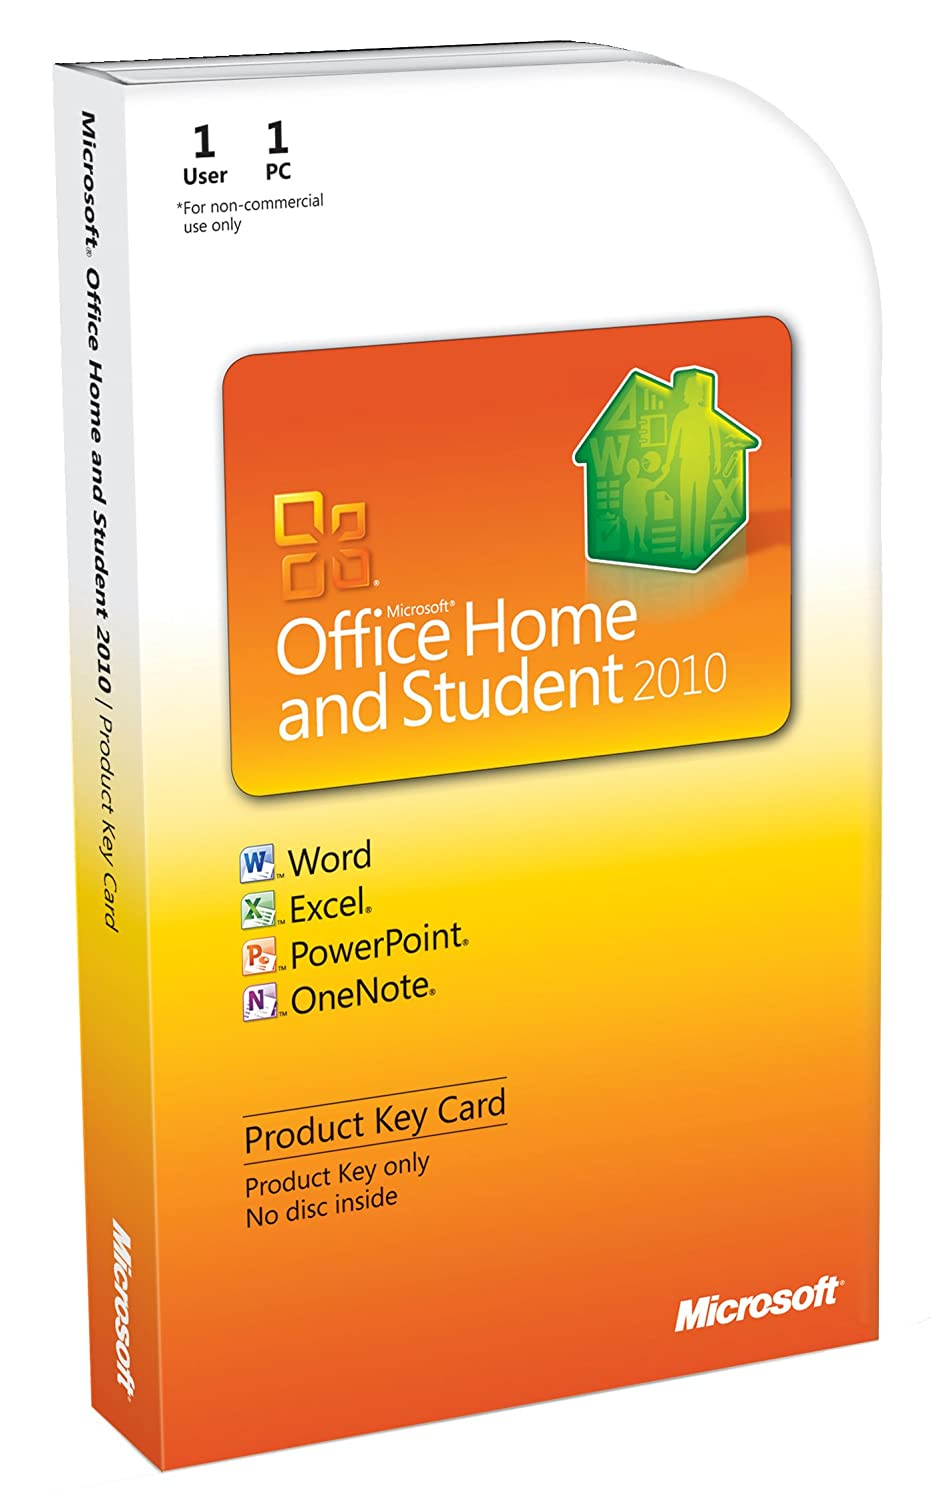 Microsoft Office Home and Student 2010 PKC